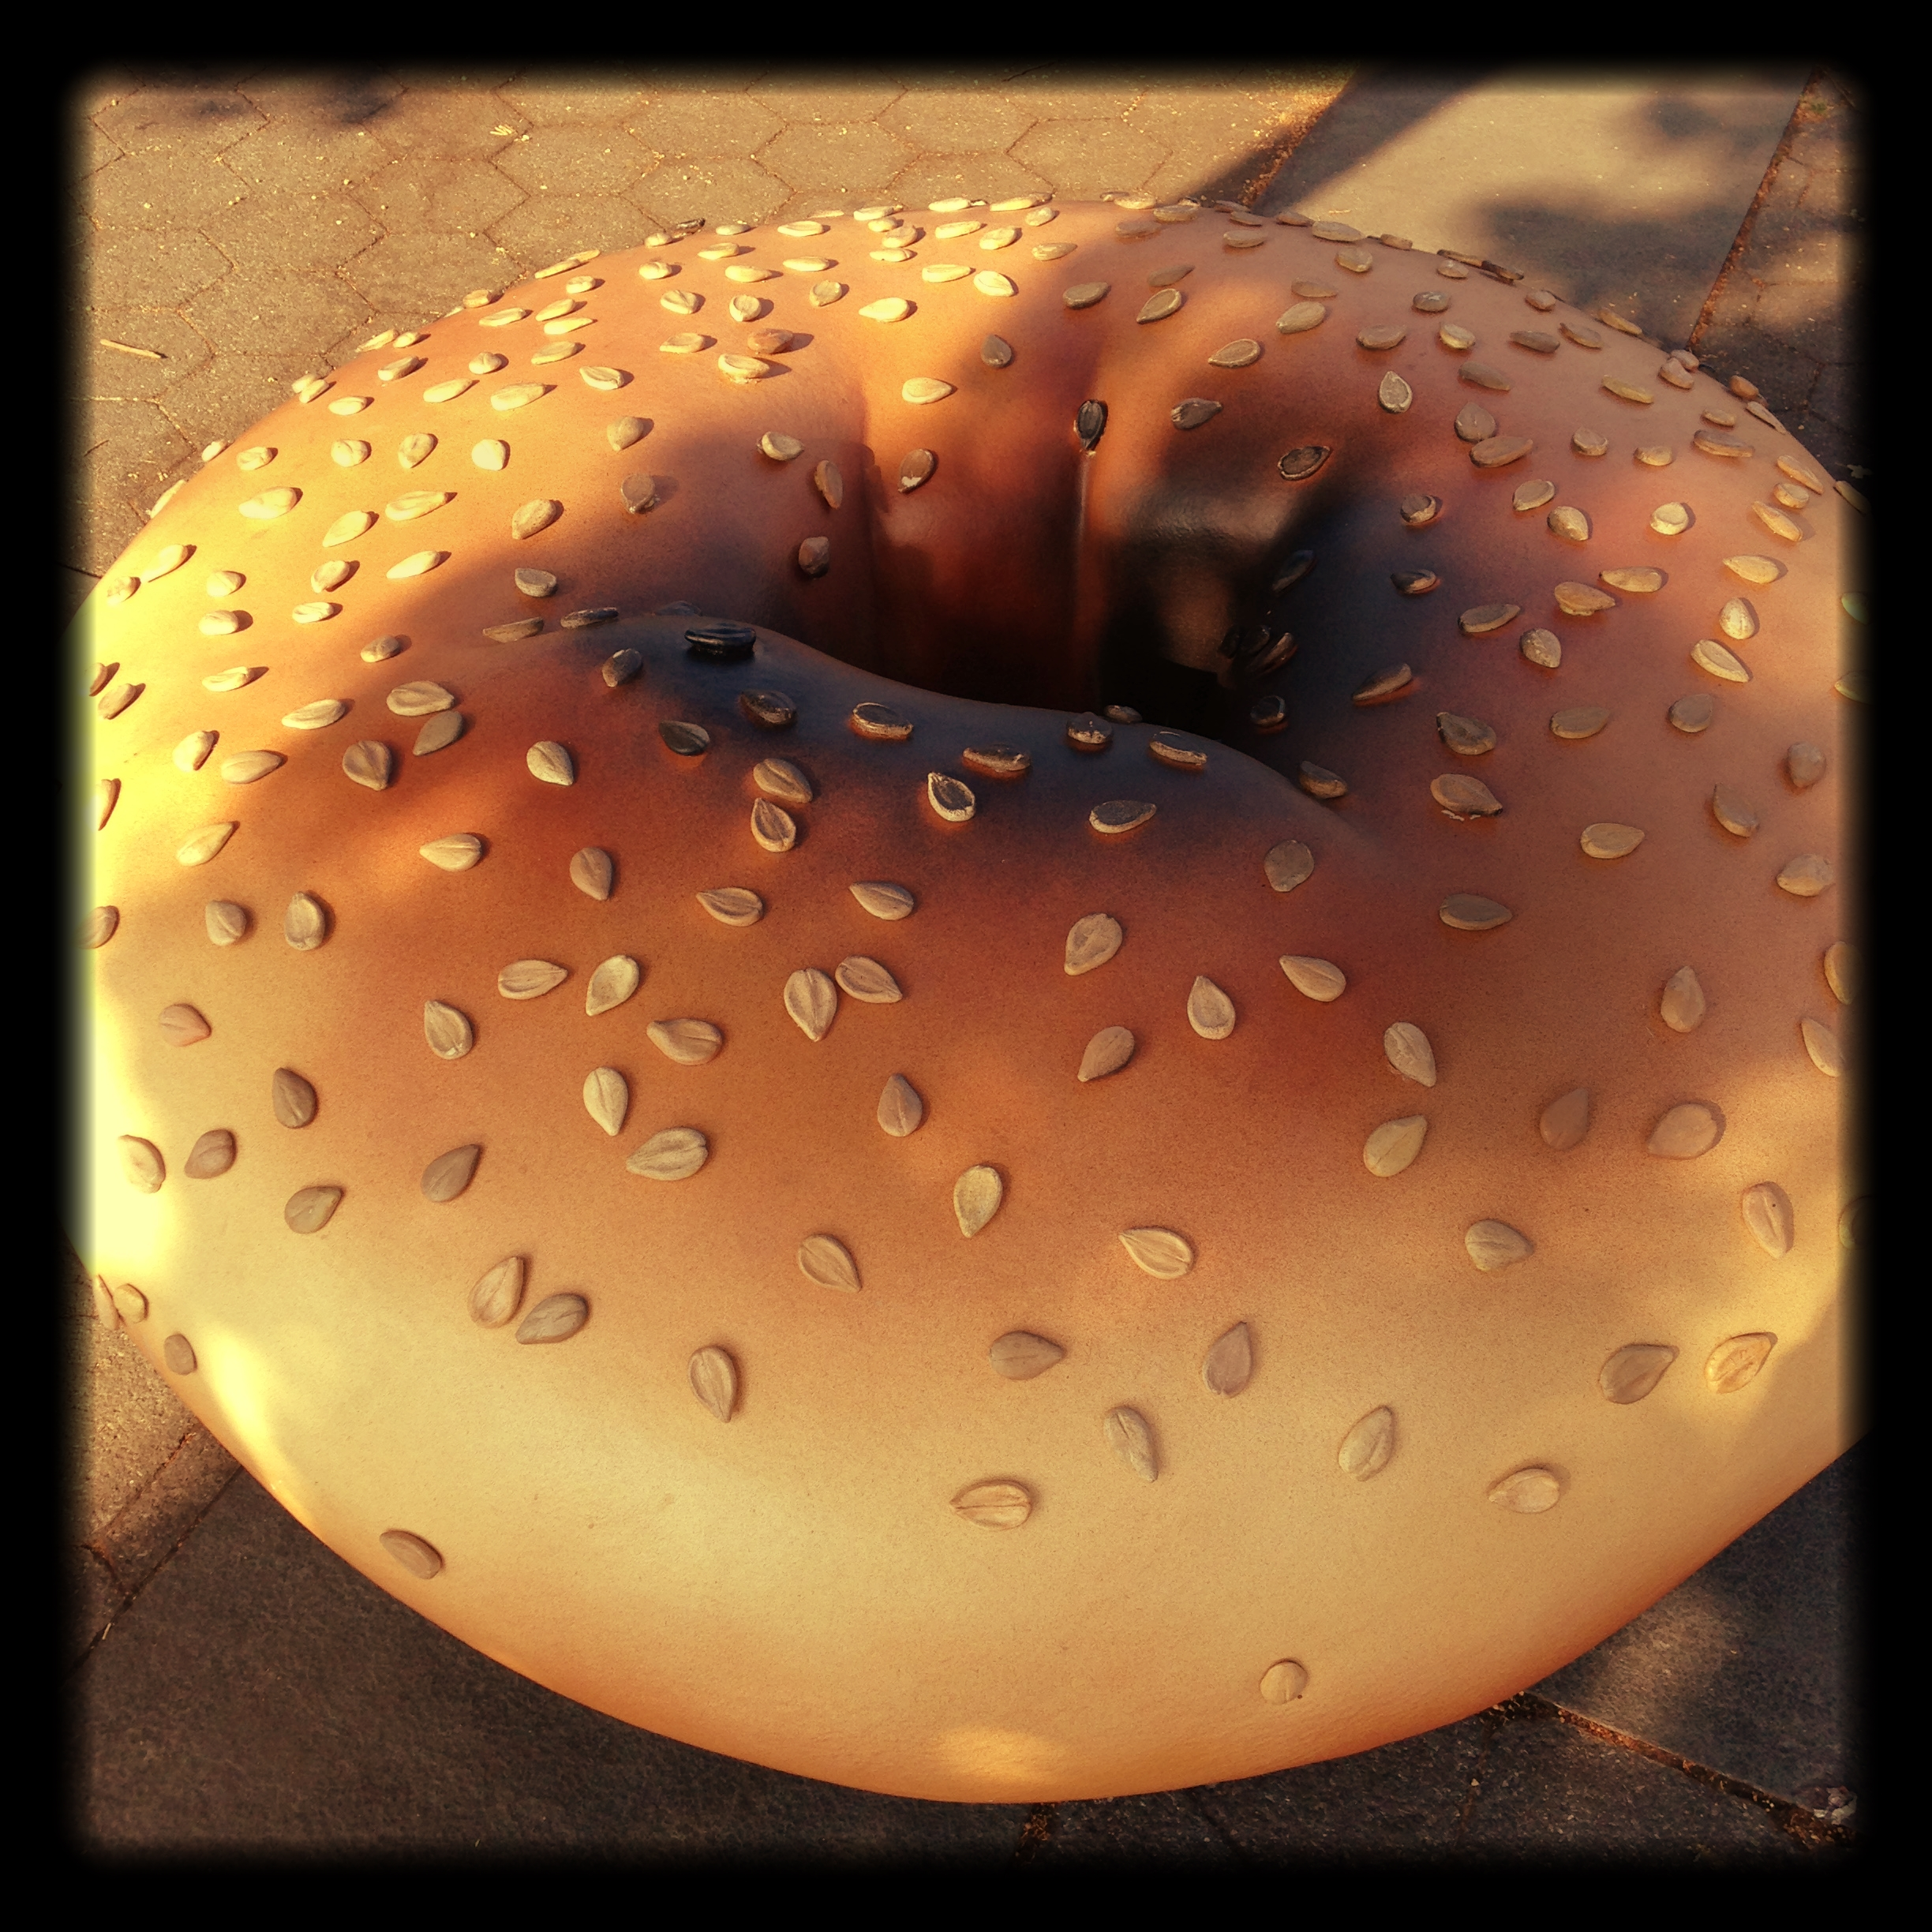 Bagel Sculpture by Hannah Liden, Hudson River Park